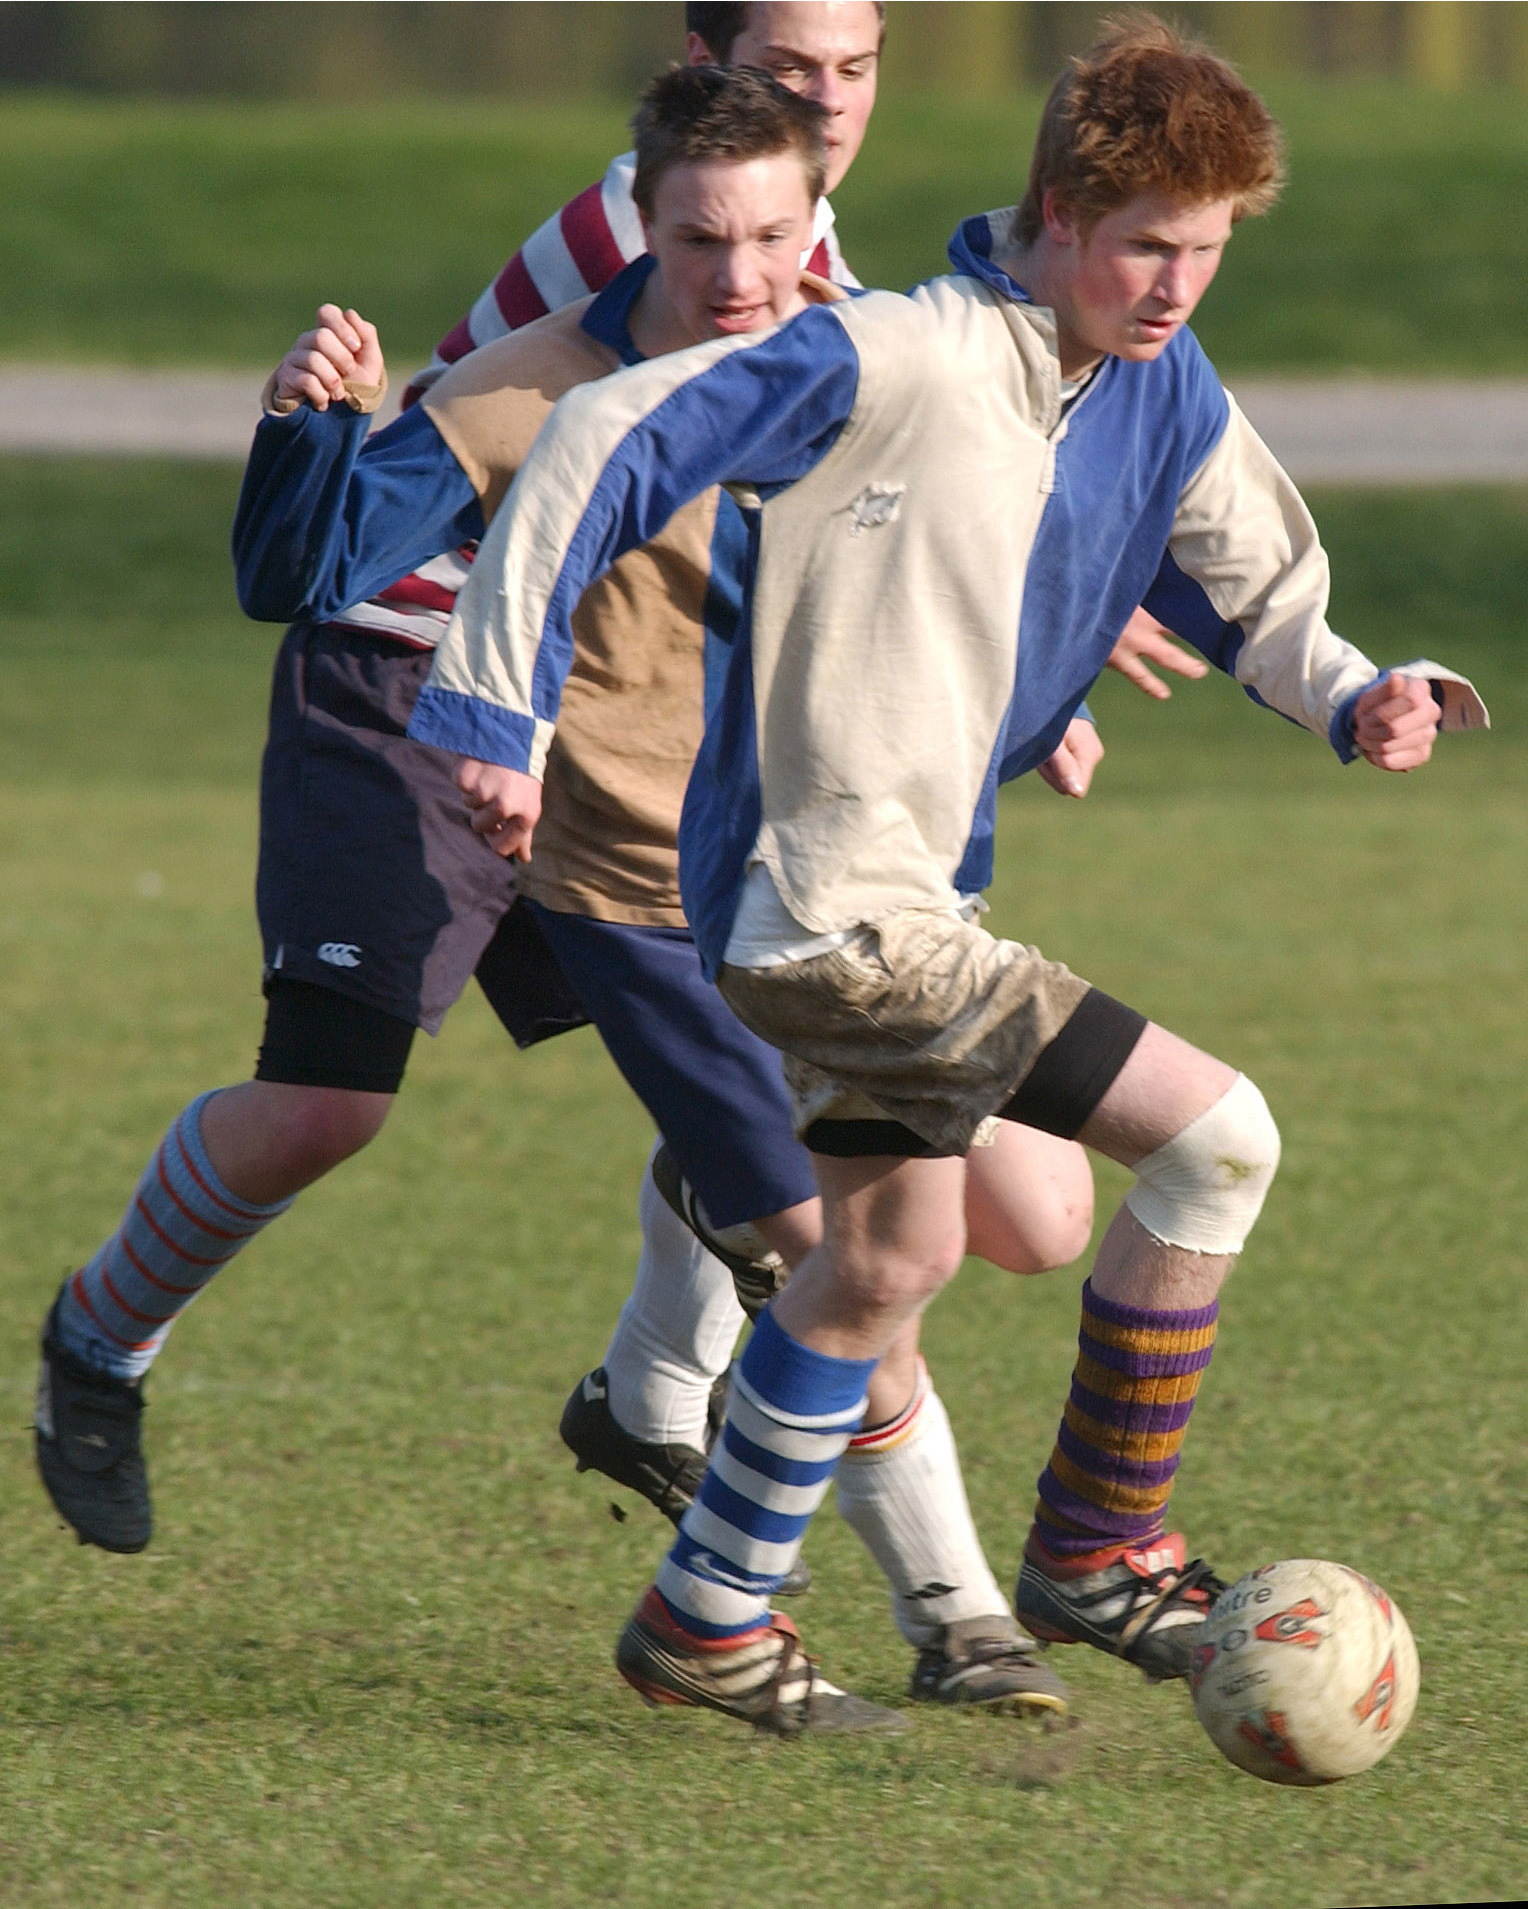 Prince Harry takes part in The Field Game on College Field at Eton in Berkshire, England on June 8, 2003.